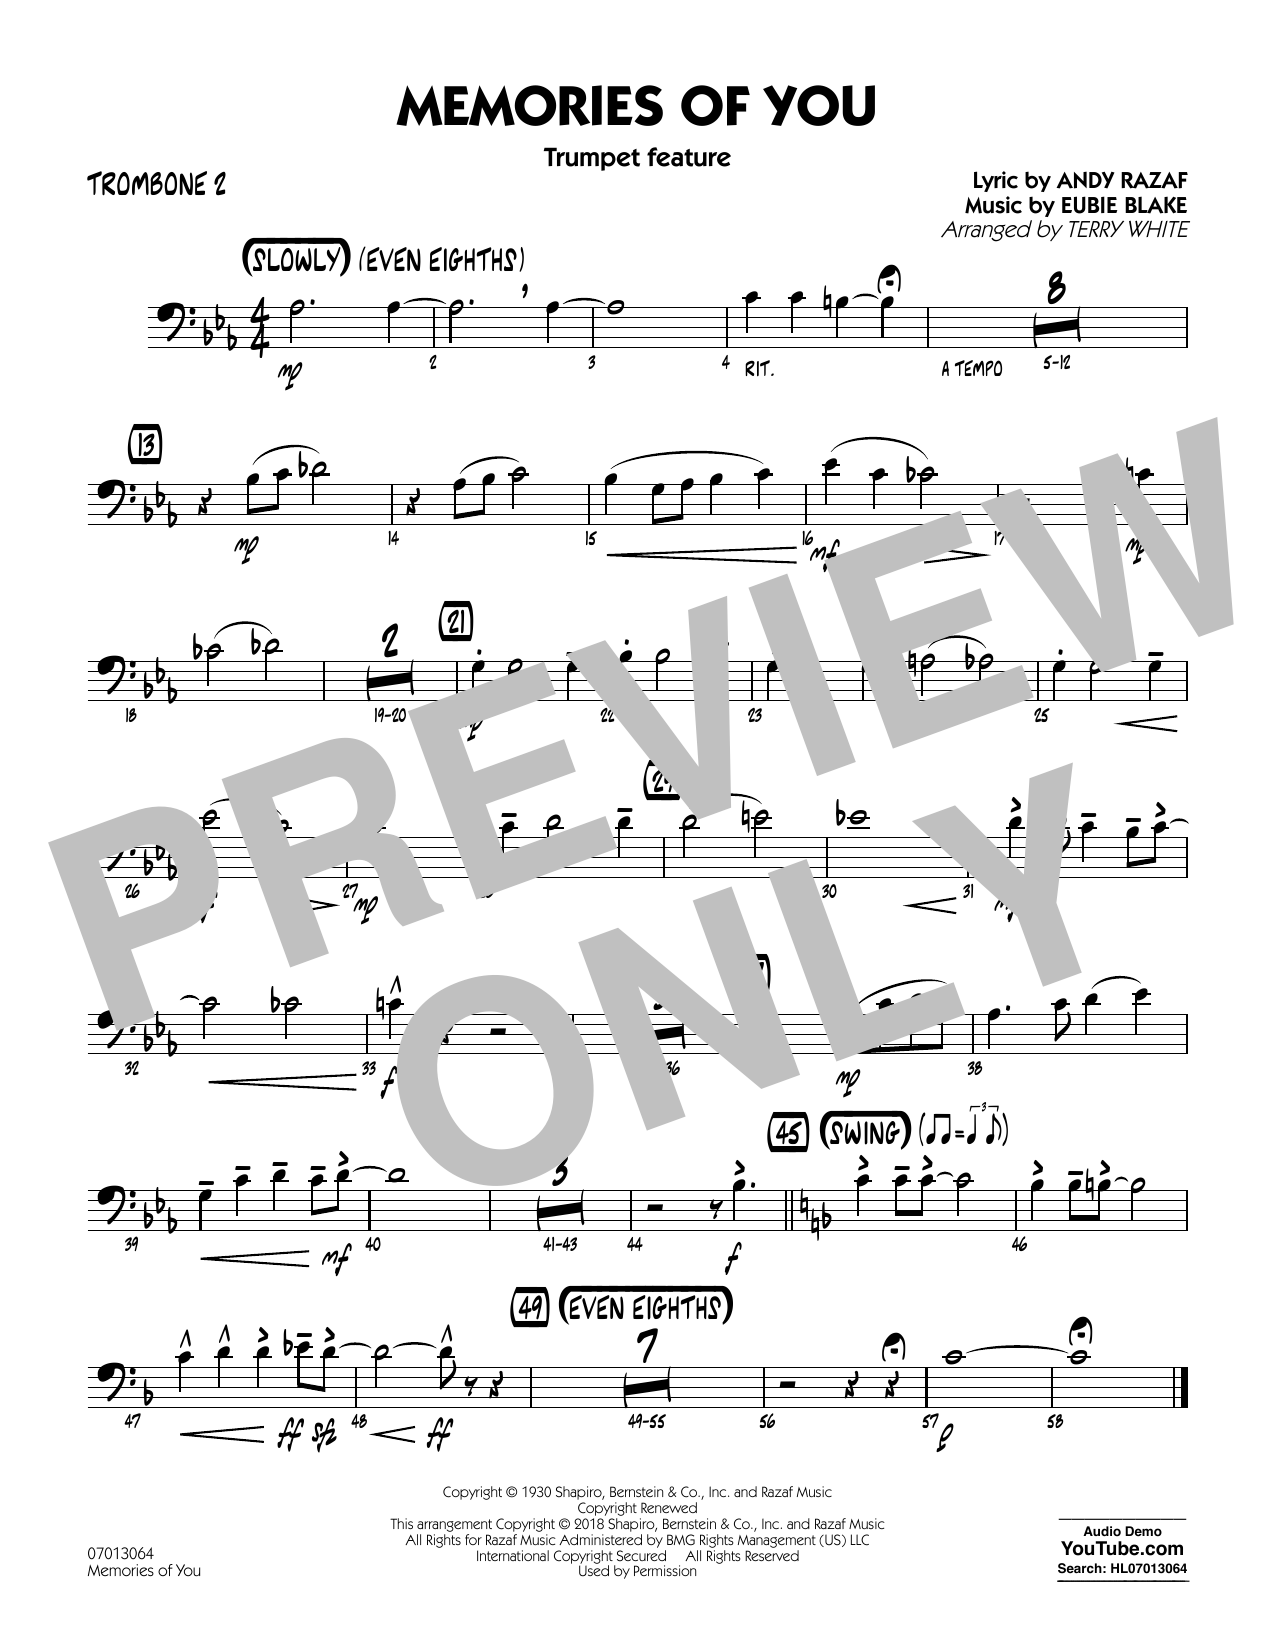 Terry White Memories of You (Trumpet Feature) - Trombone 2 sheet music notes printable PDF score